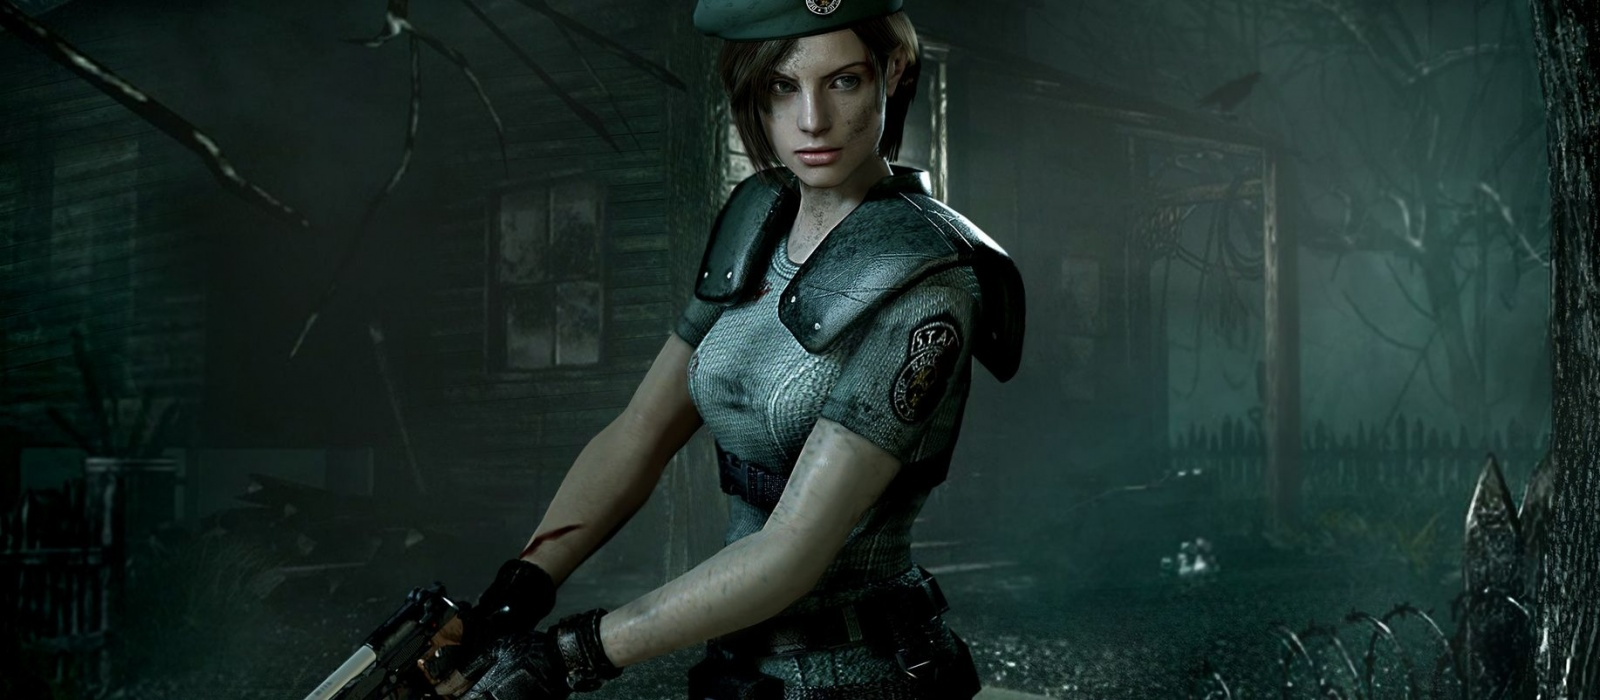 The first Resident Evil launched with ray tracing. The game turned out to be much more detailed